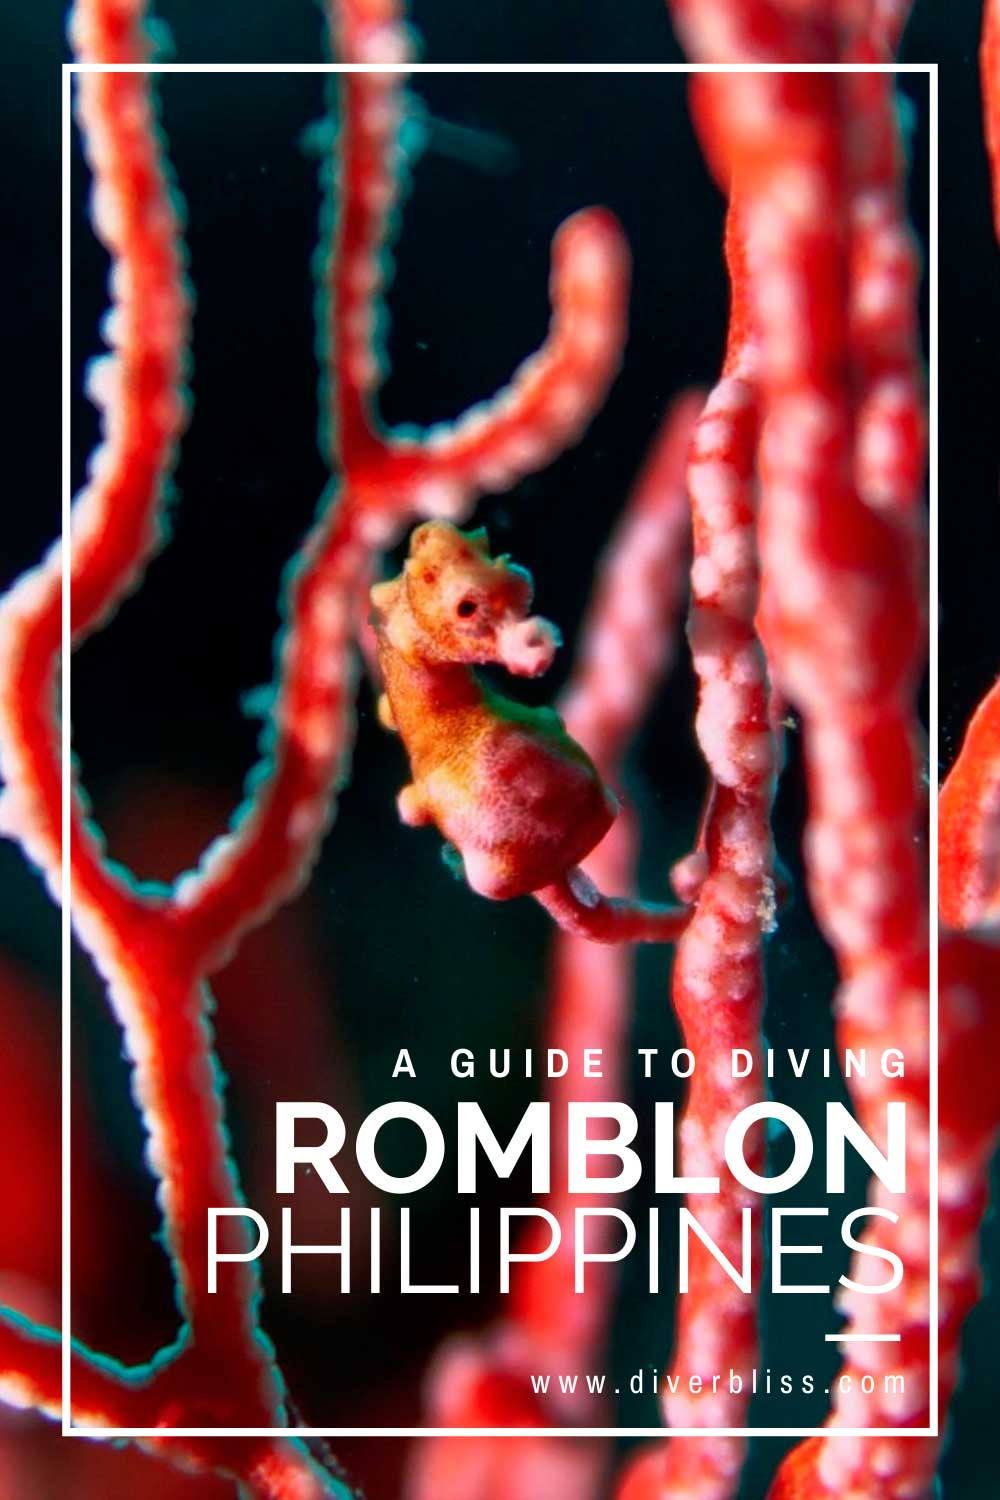 A Guide to Diving Romblon Philippines